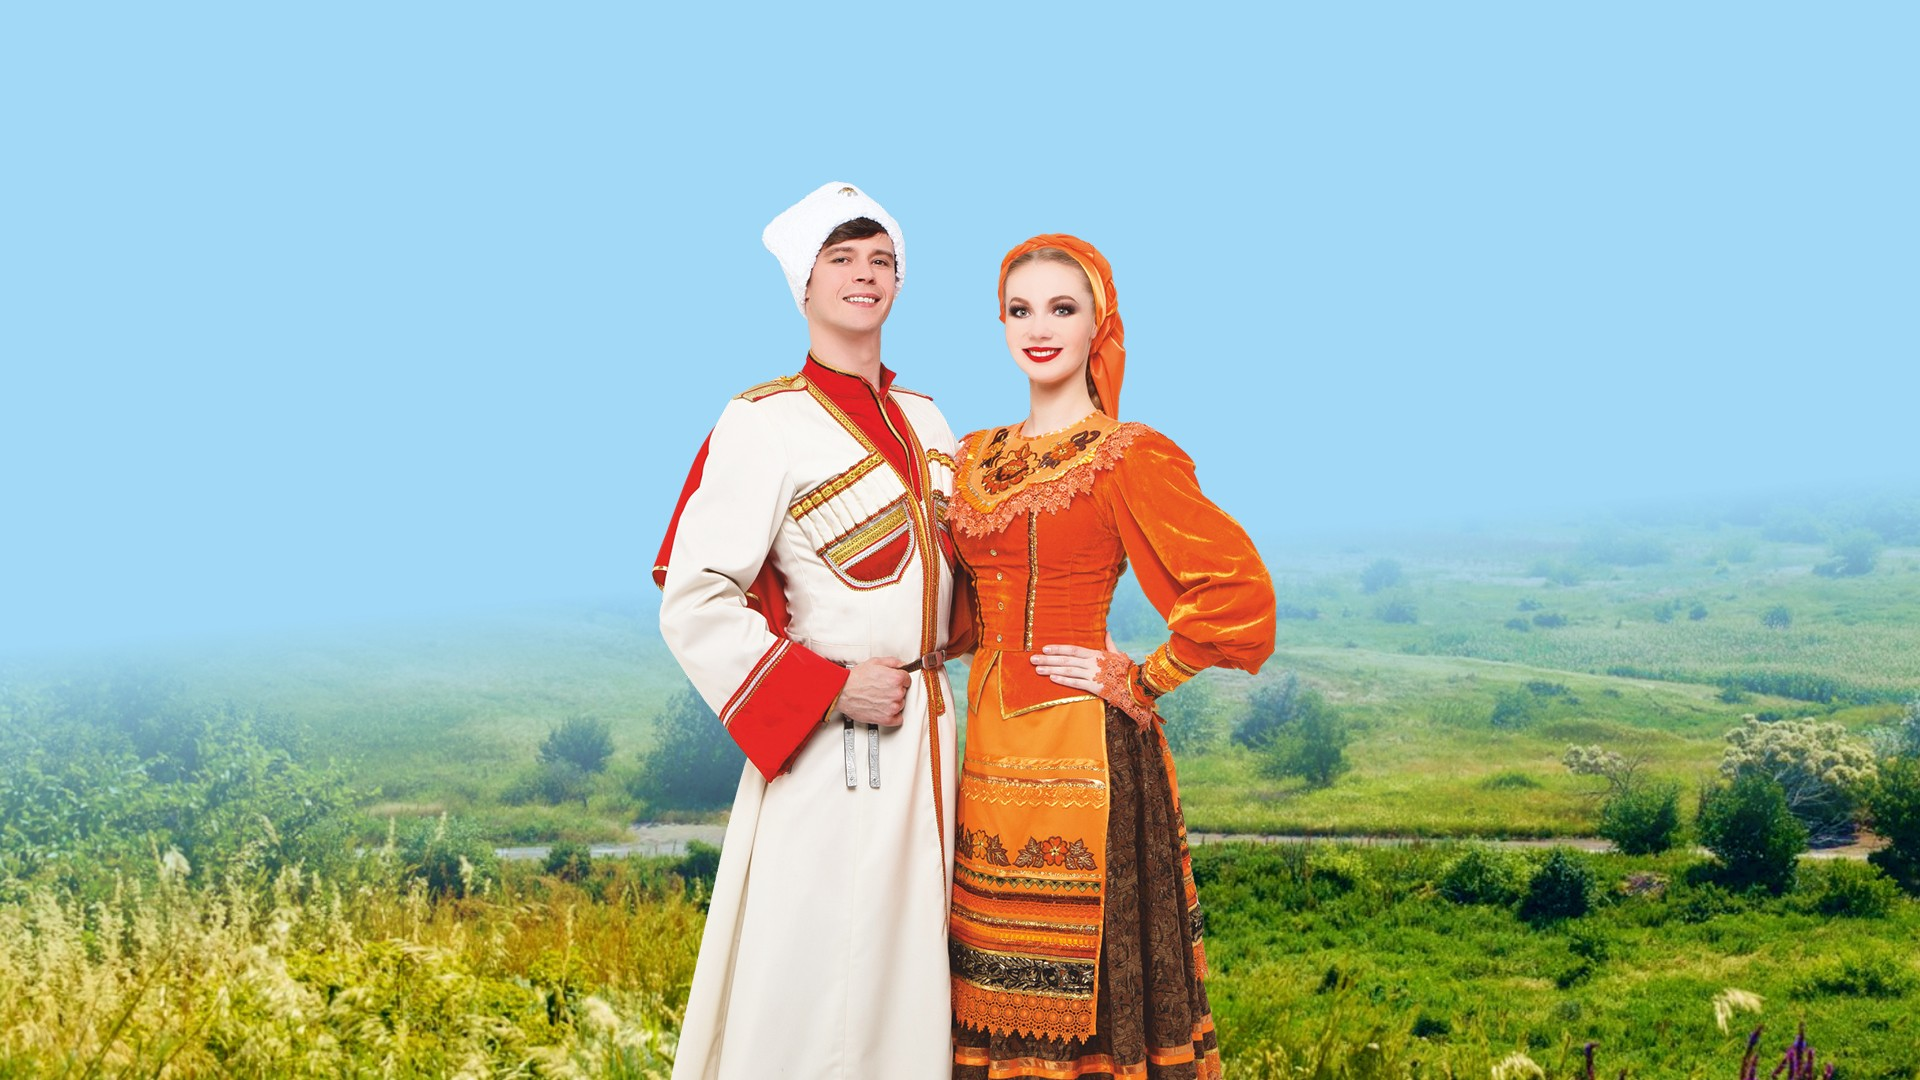 Show Program by Kuban Cossacks. To the 80th anniversary of the Krasnodar Philharmonic named after G.F. Ponomarenko